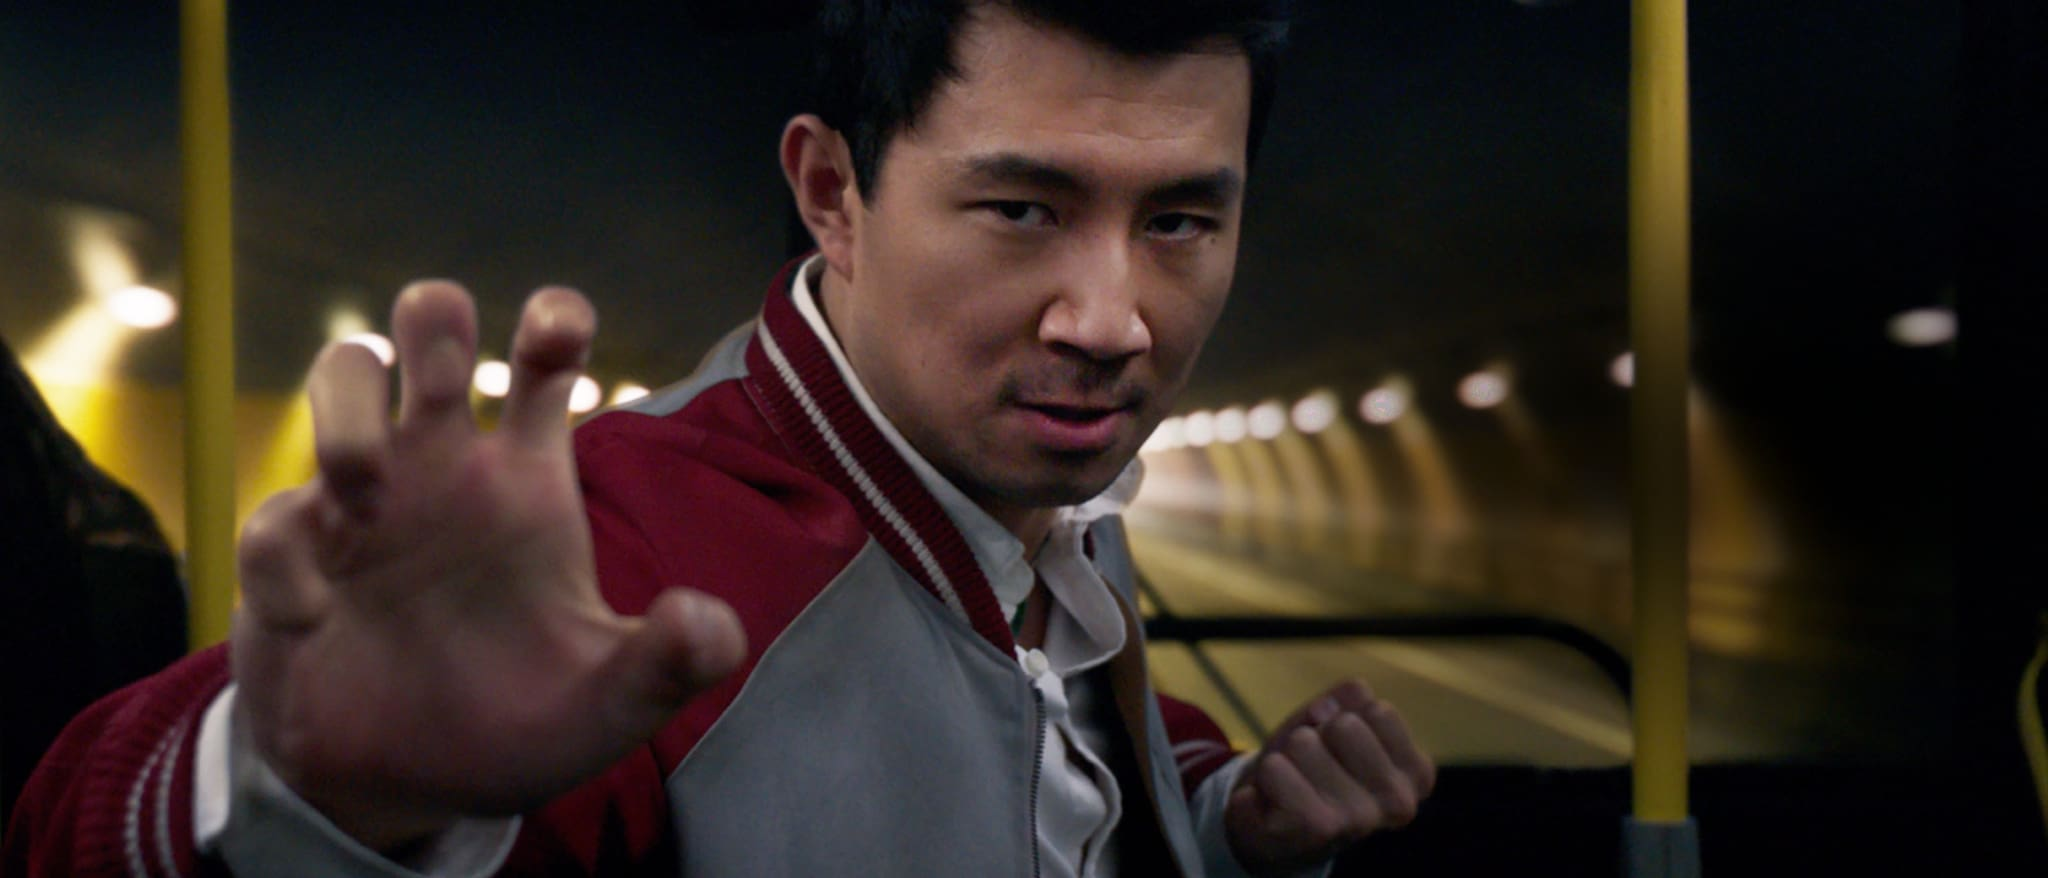 Marvel Studios' Shang-Chi and The Legend of the Ten Rings   Watch trailers and buy movie tickets